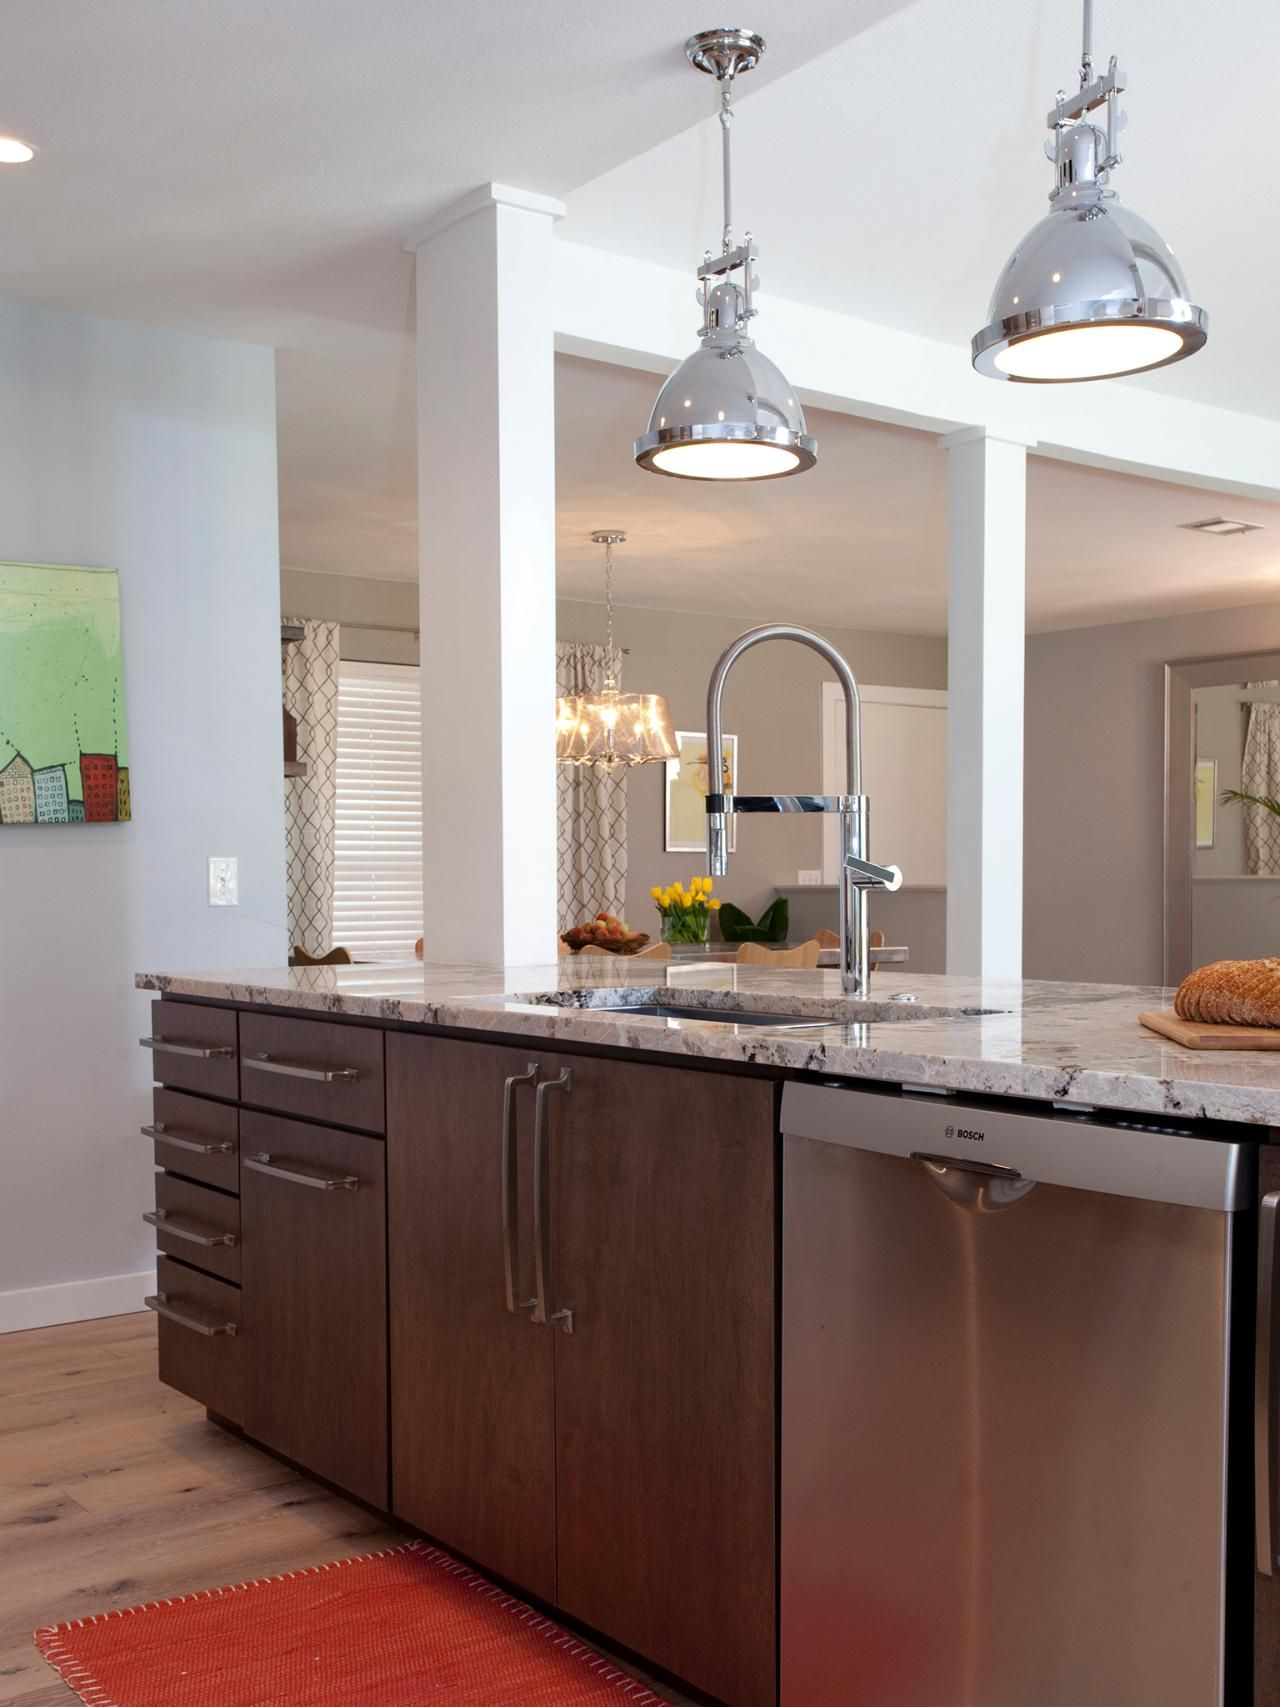 As Seen On Hgtv S Property Brothers Jonathan And Drew Scott Removed The Wall B Replacing Kitchen Countertops Stainless Steel Kitchen Lighting Elegant Kitchens